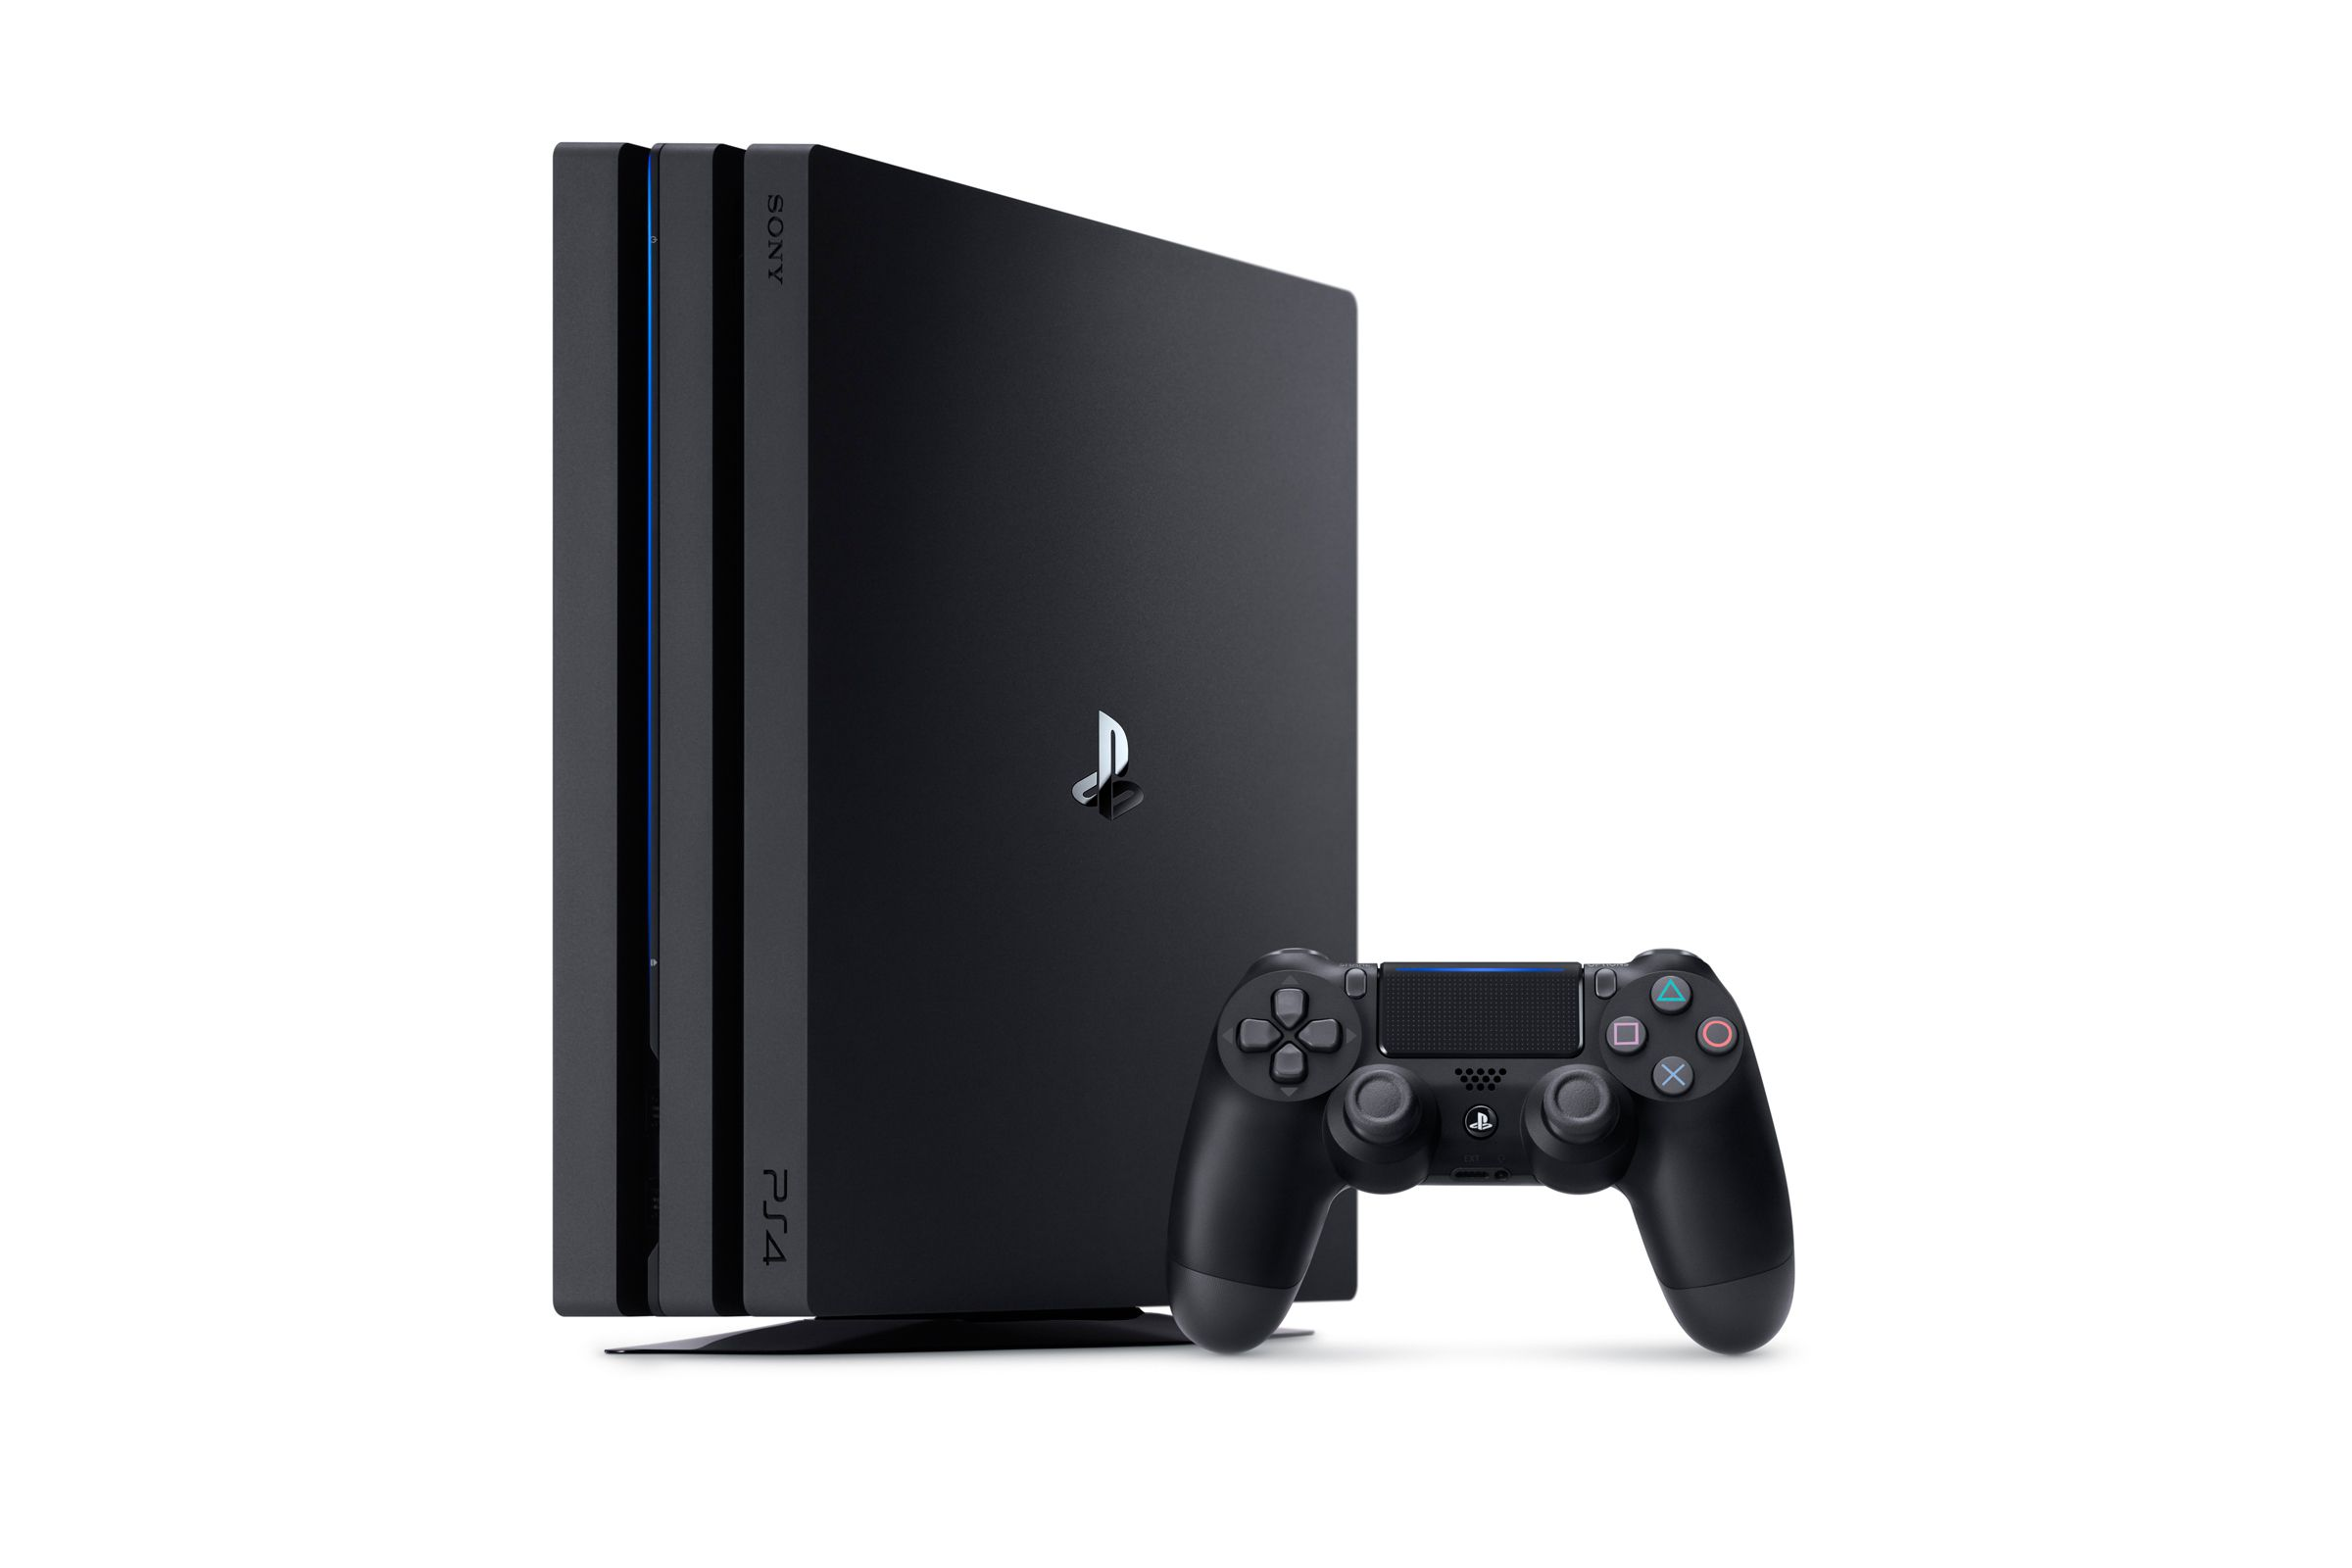 ps4 pro la liste des jeux optimis s pour la nouvelle console de sony. Black Bedroom Furniture Sets. Home Design Ideas